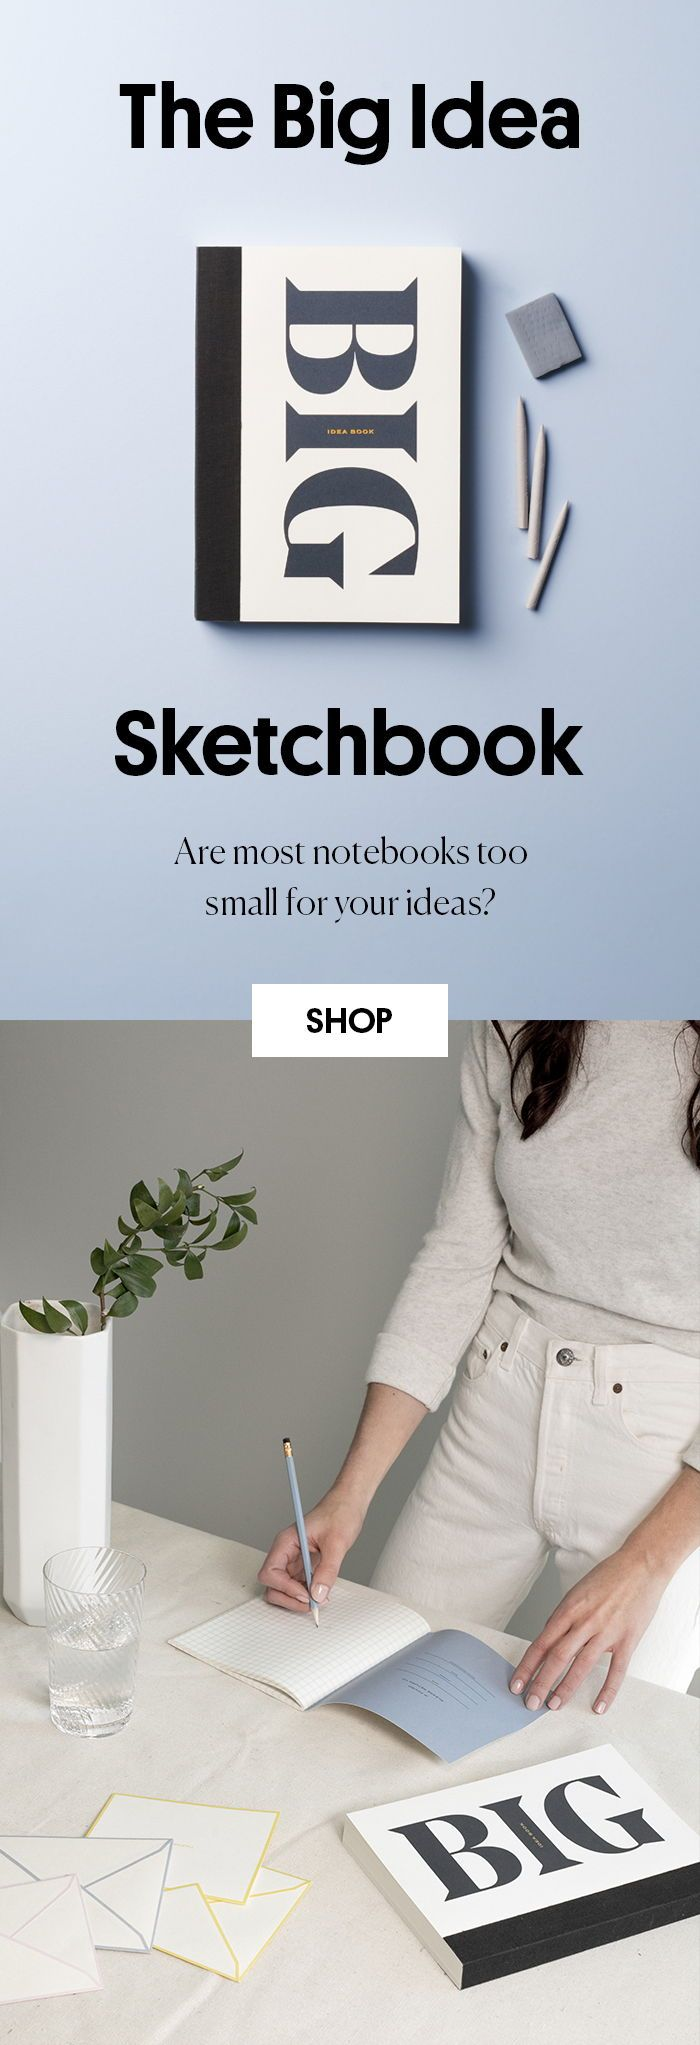 Are Most Notebooks Too Small For Your Ideas The Big Idea Sketchbook Has Got You Covered Oversized With Blank C Sketch Book Wit And Delight Pretty Stationery